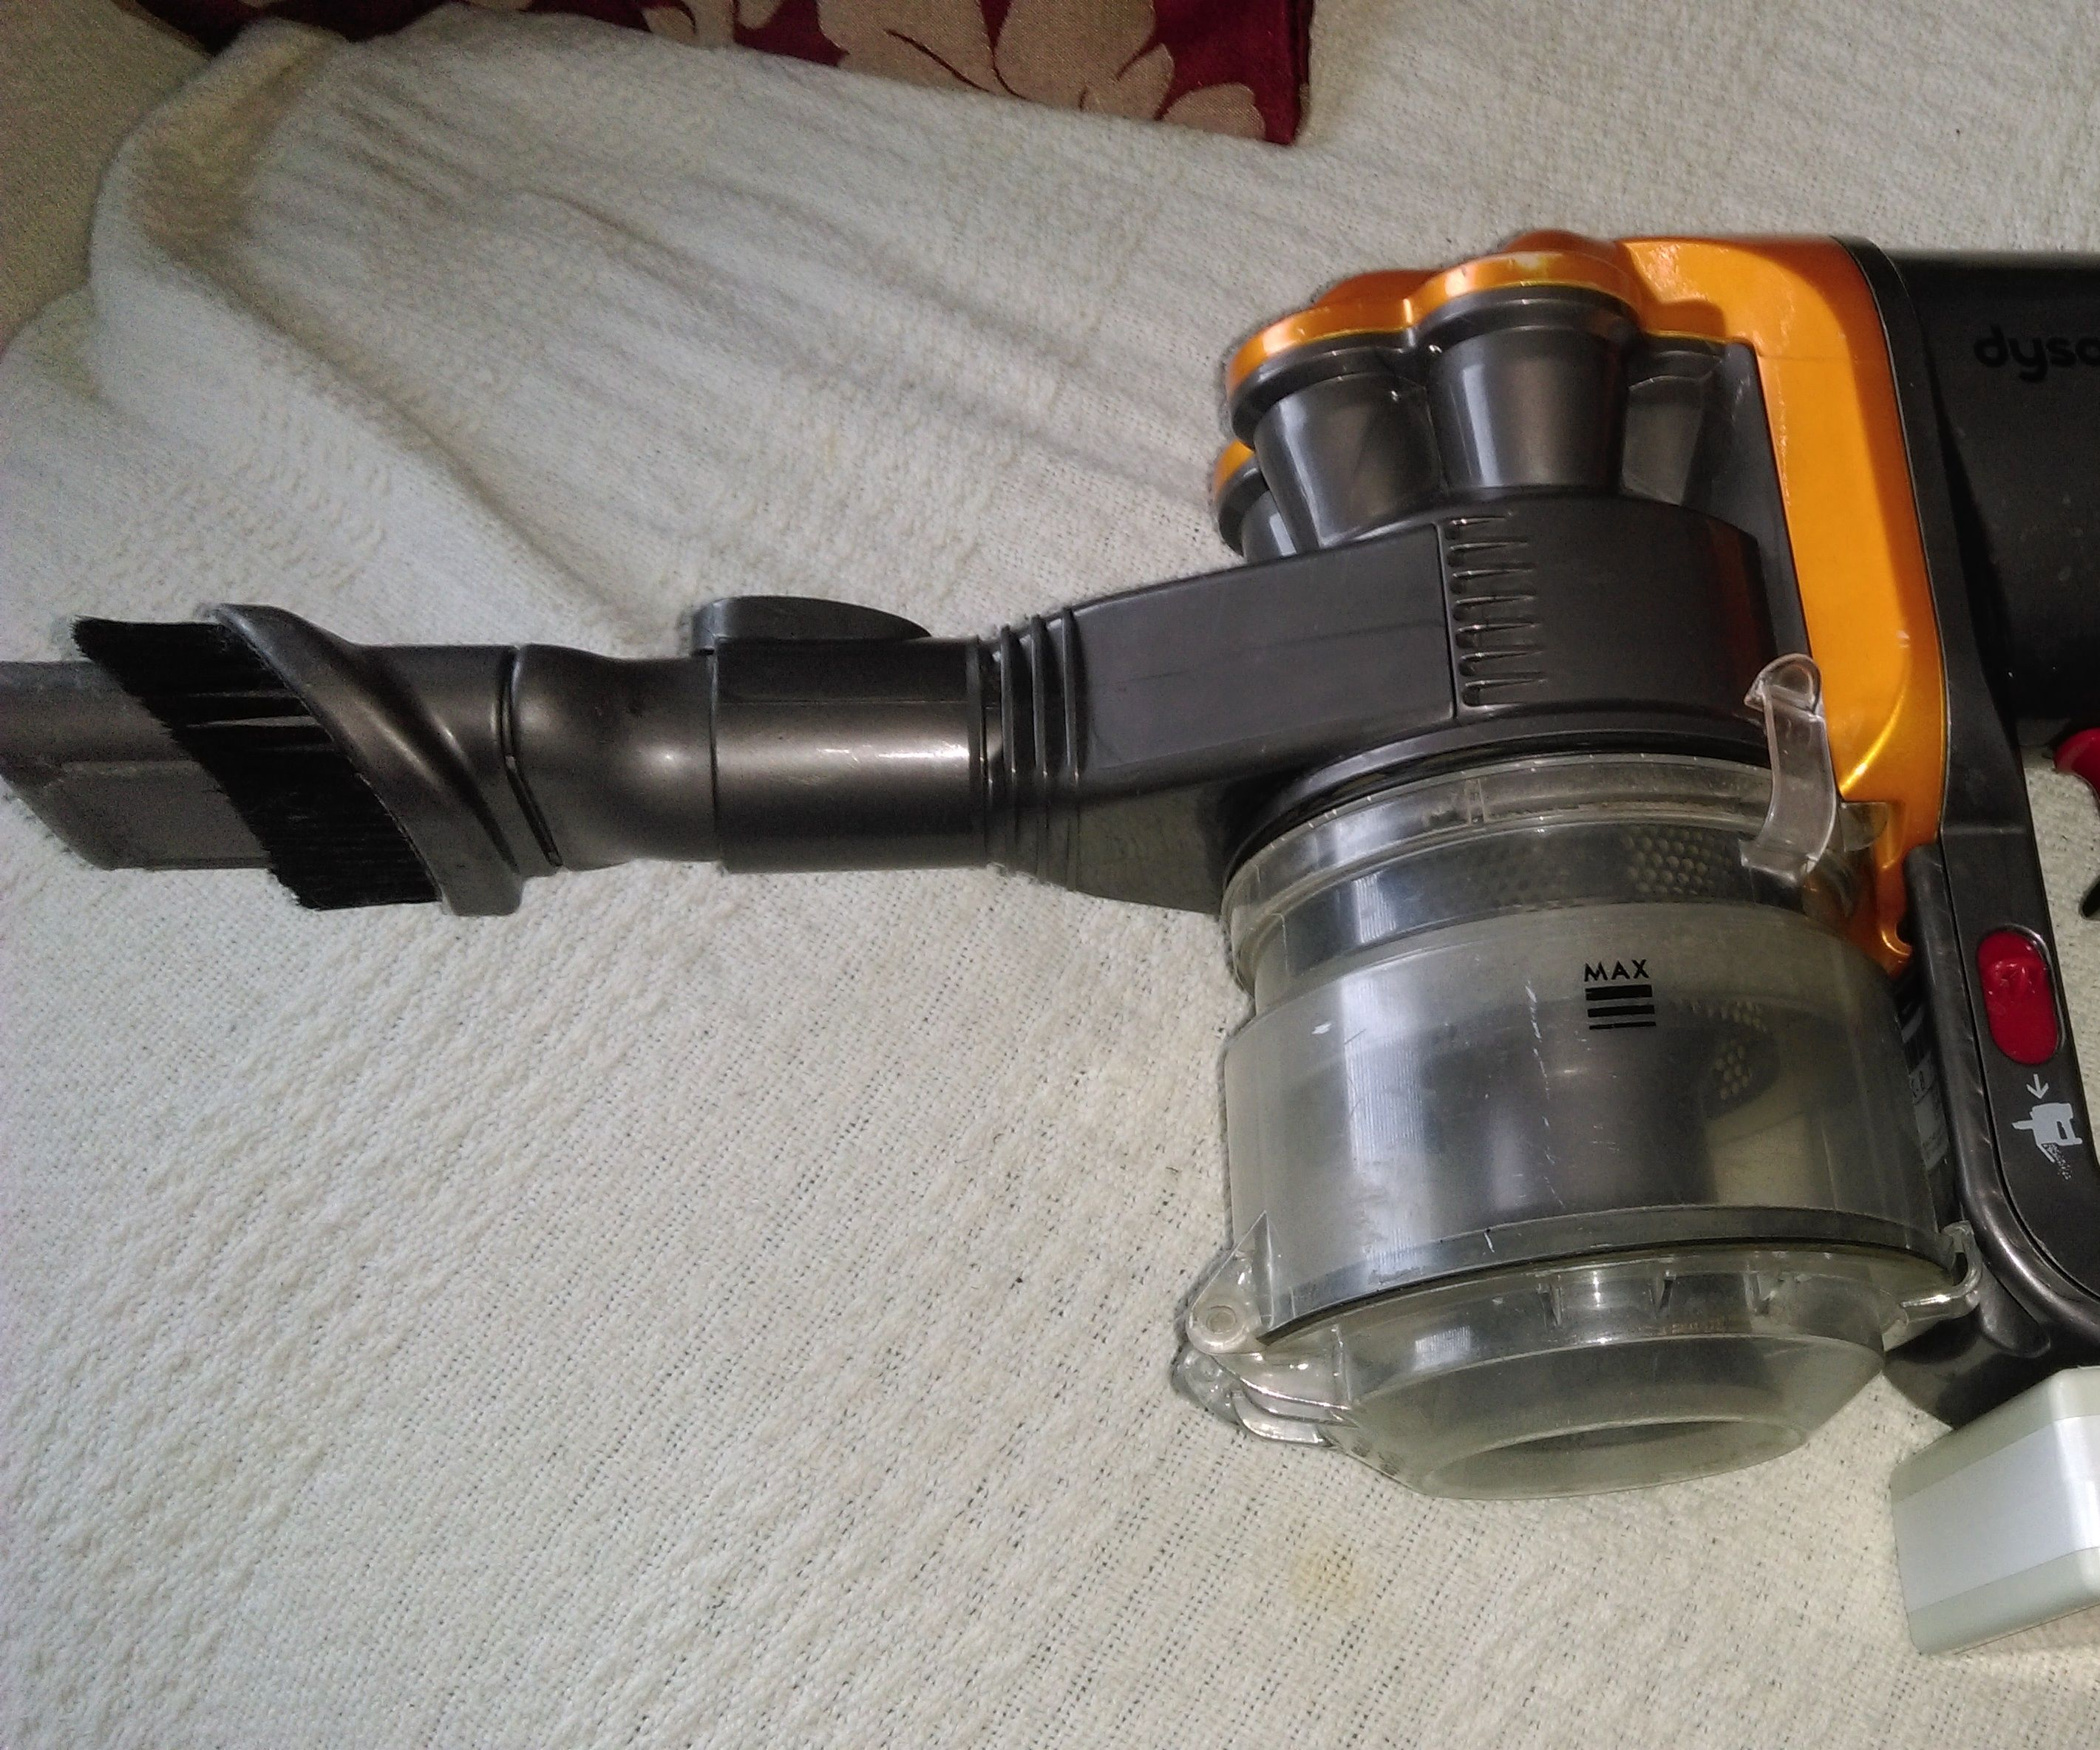 Dyson Dc16 Cordless: Alternative Powering Options, Fix